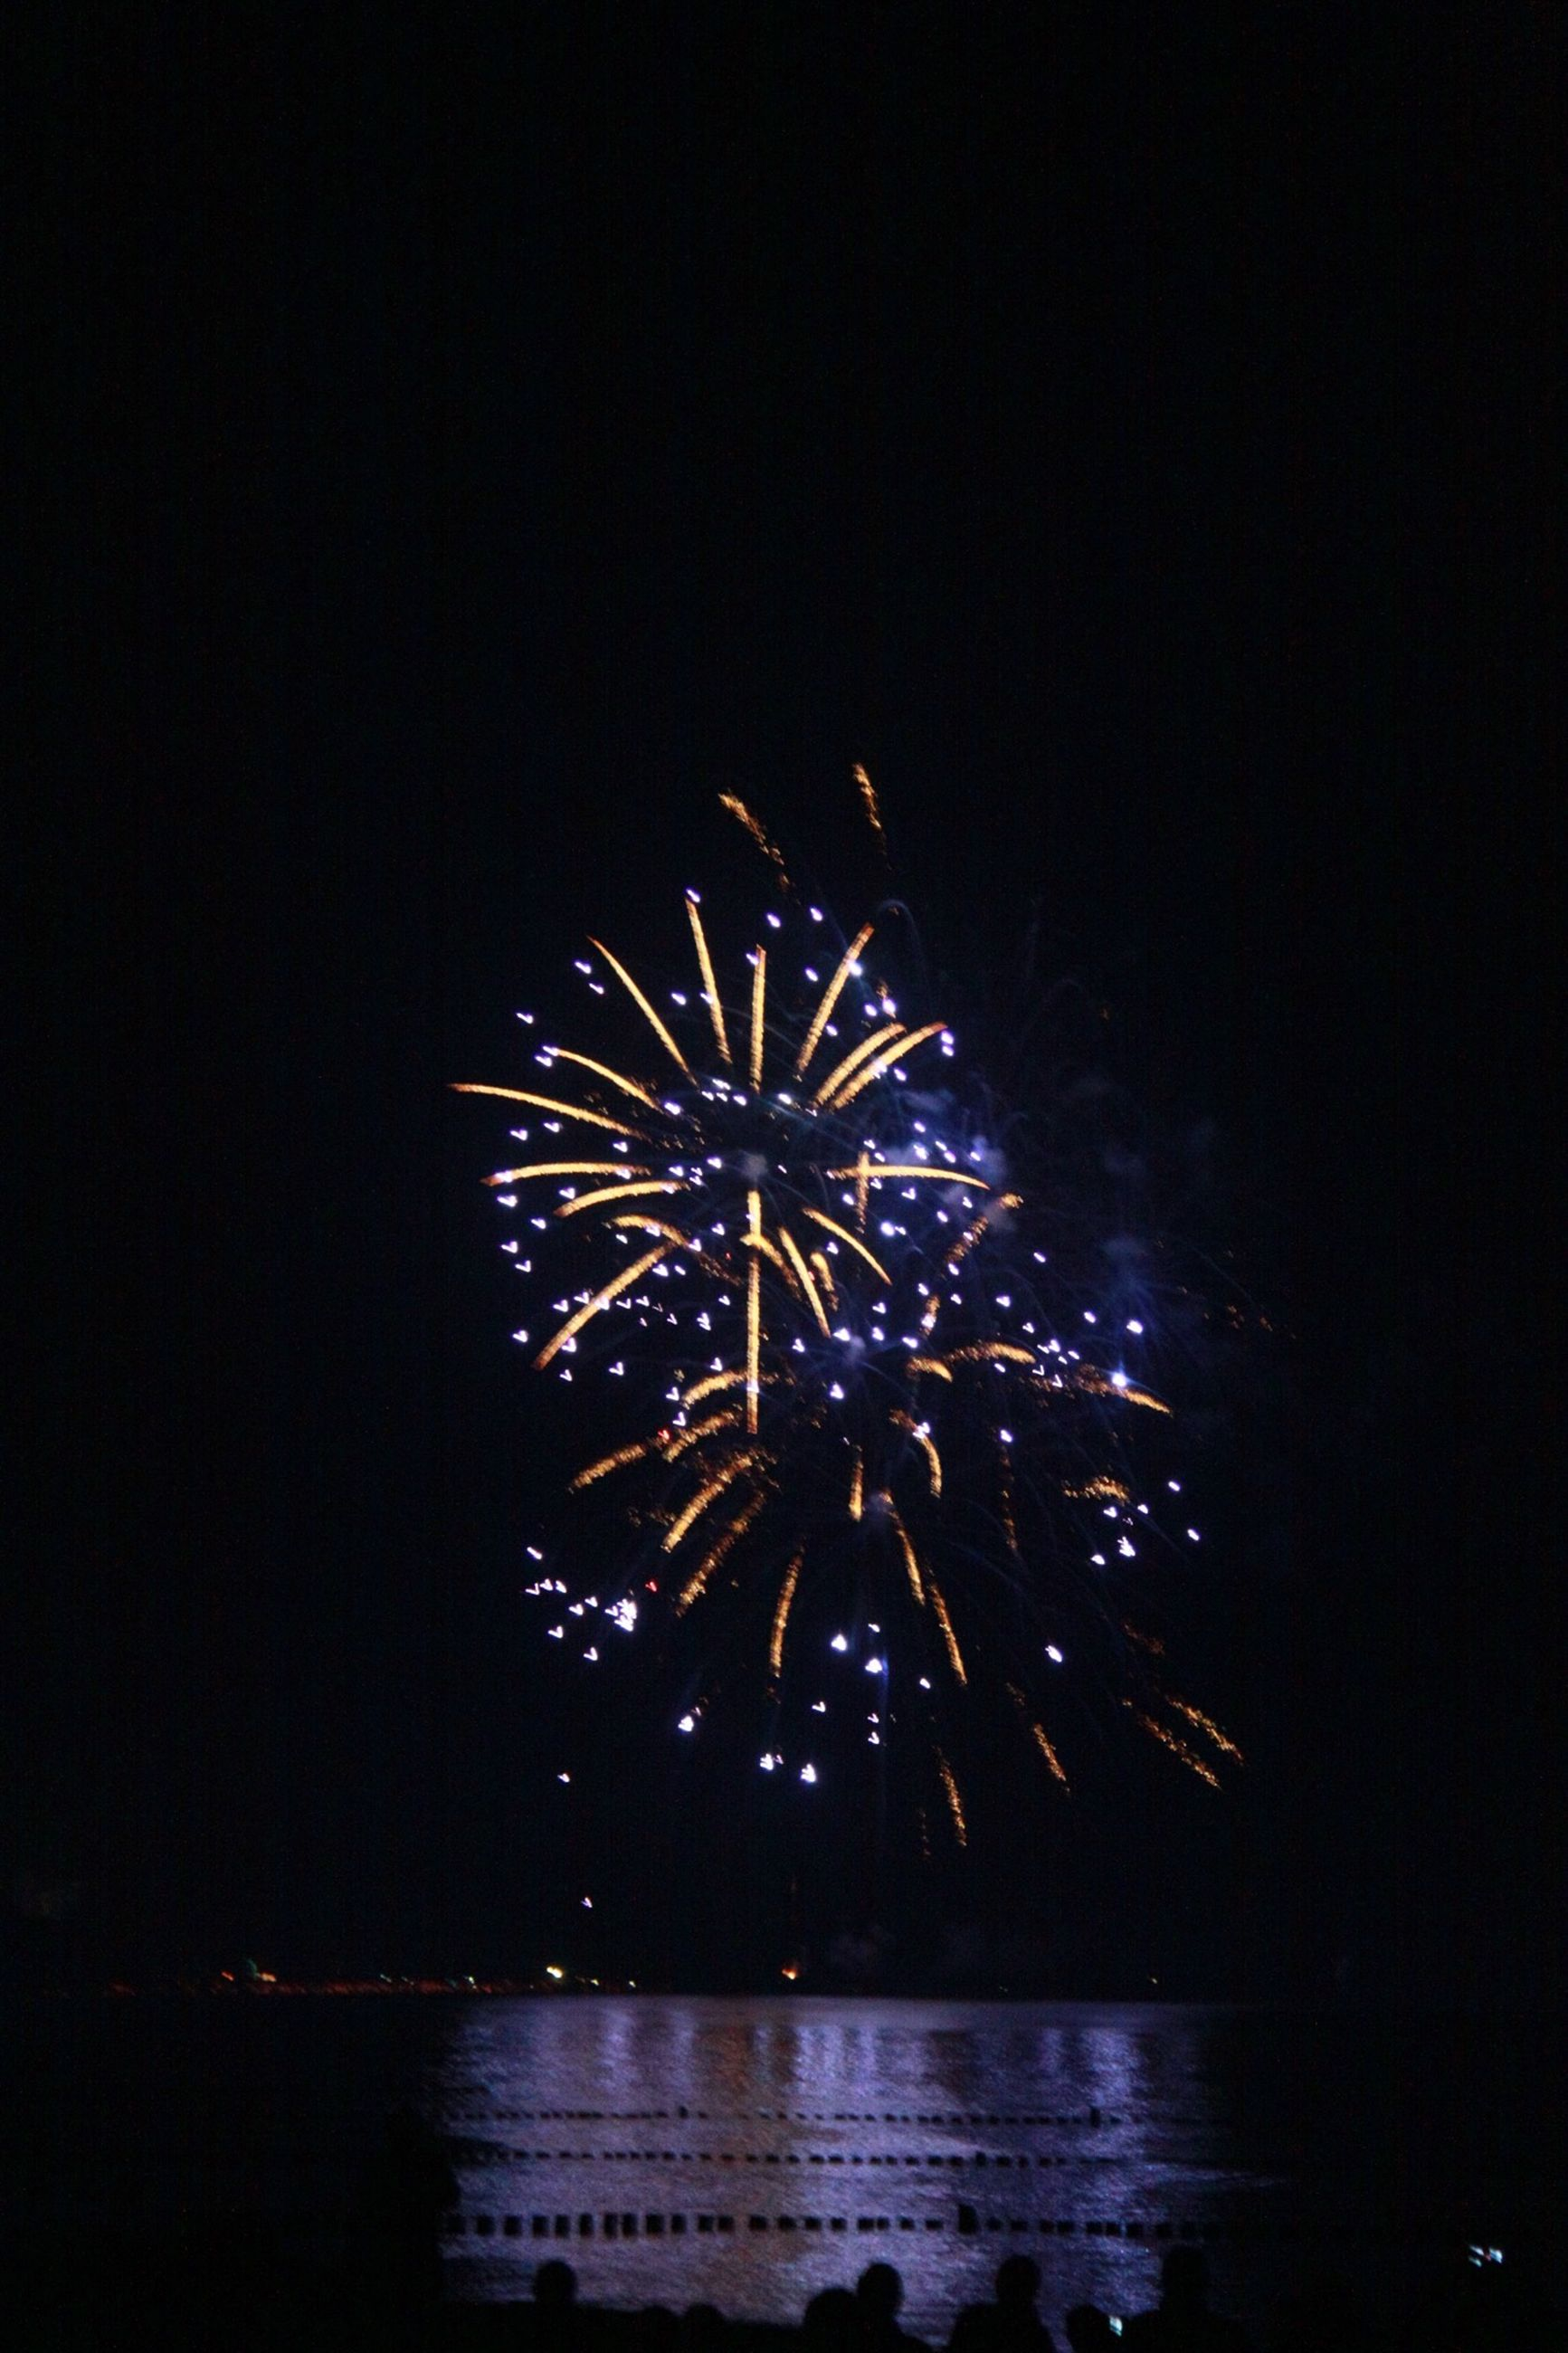 illuminated, night, firework display, celebration, arts culture and entertainment, exploding, long exposure, glowing, firework - man made object, motion, sparks, event, firework, sky, low angle view, entertainment, celebration event, blurred motion, multi colored, water